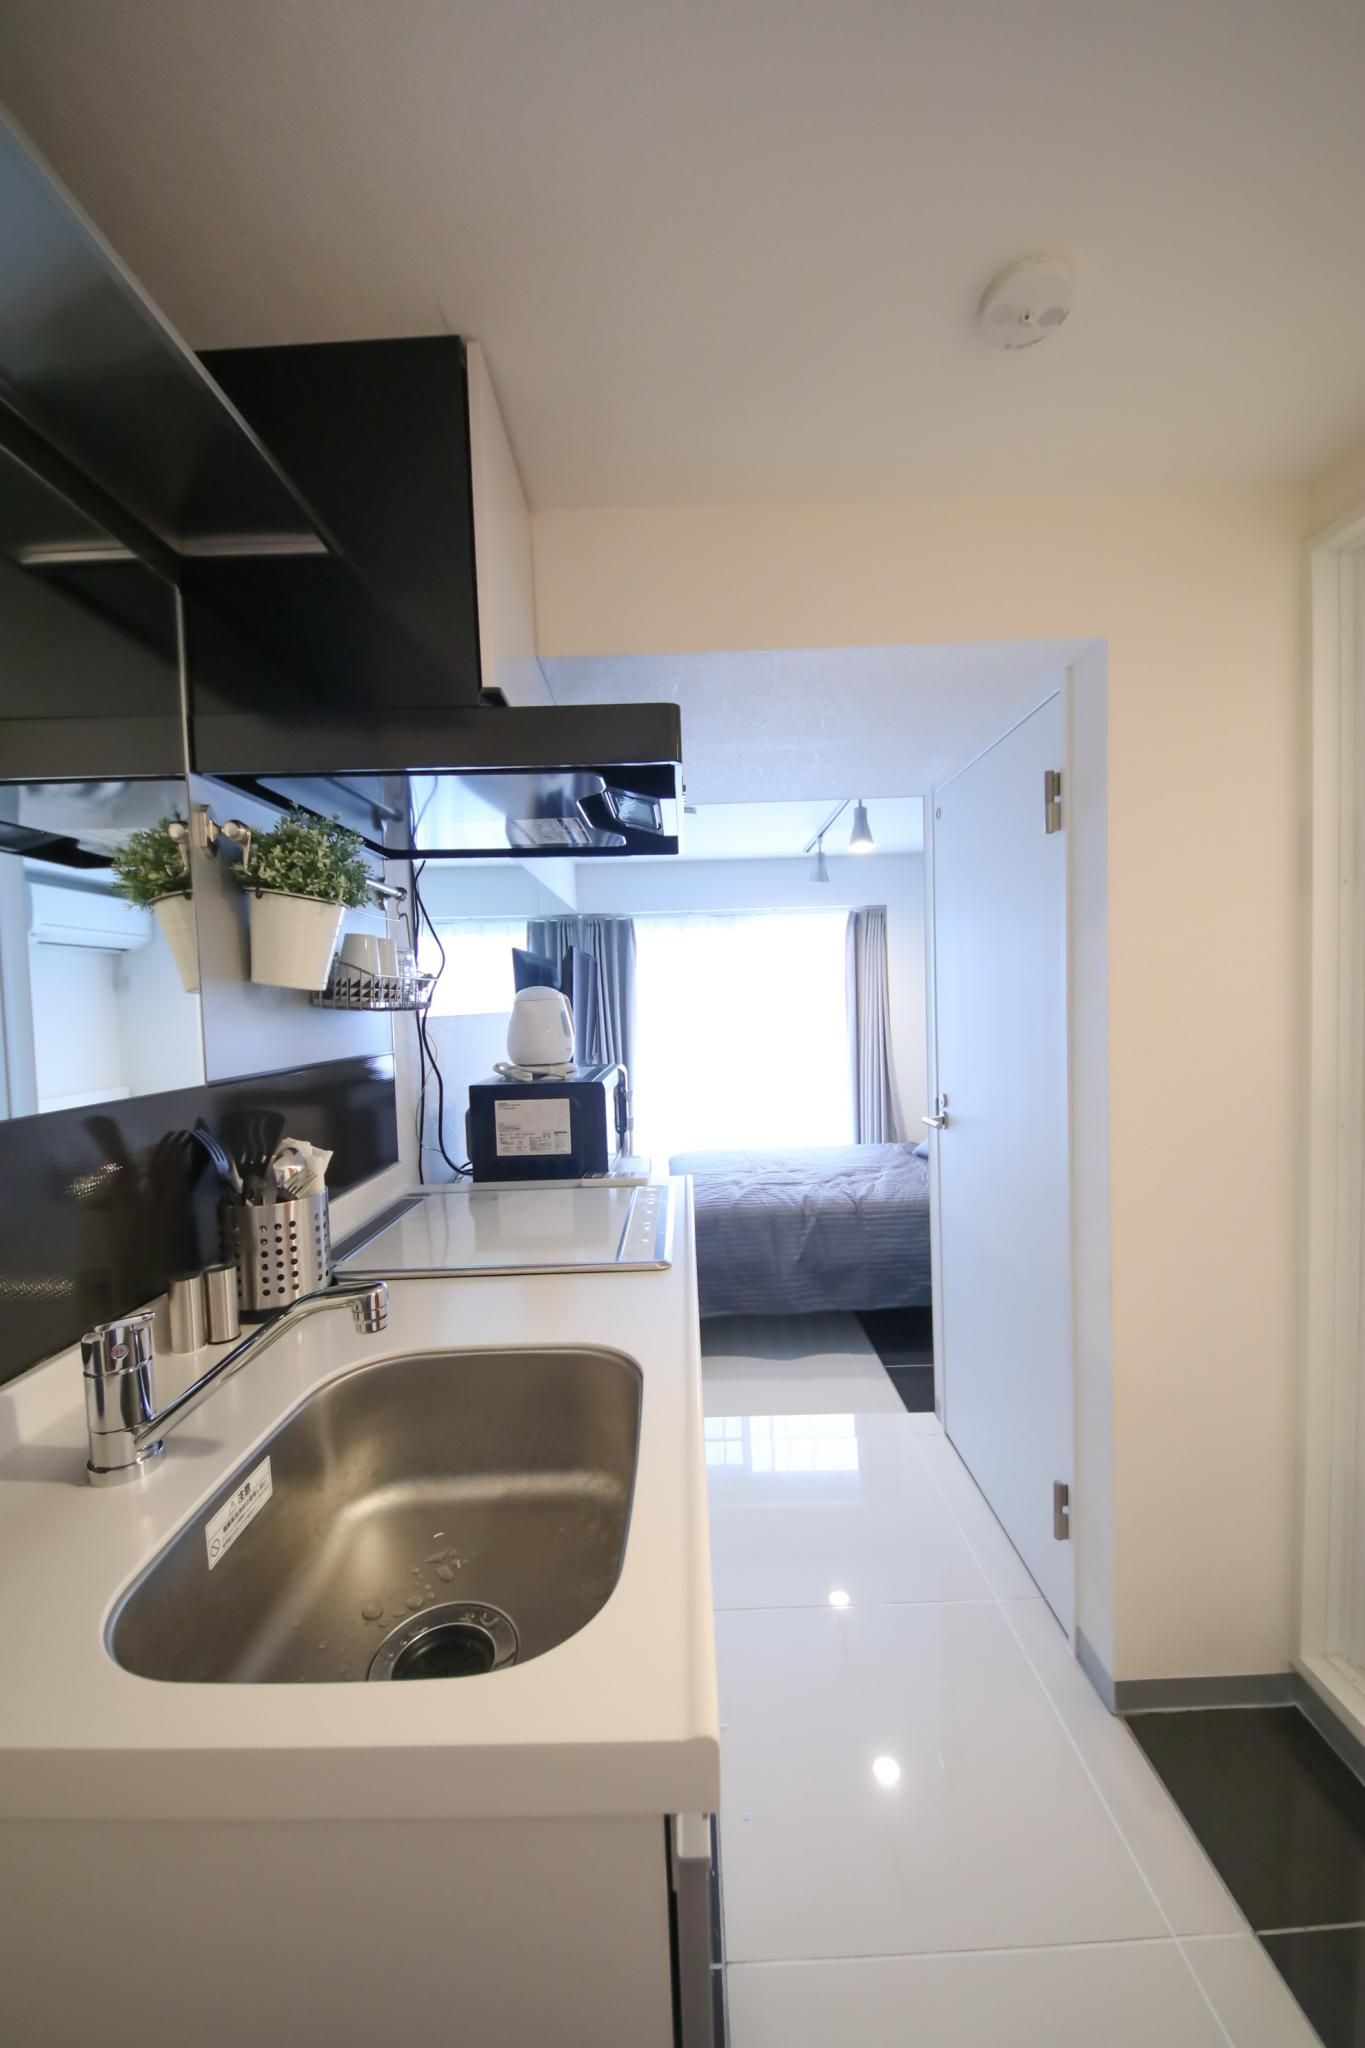 1r Apartment In Central Tokyo Short Term Fully Furnished 99 400 Mo 874 38 Including Internet Utilities And Wifi Built 2017